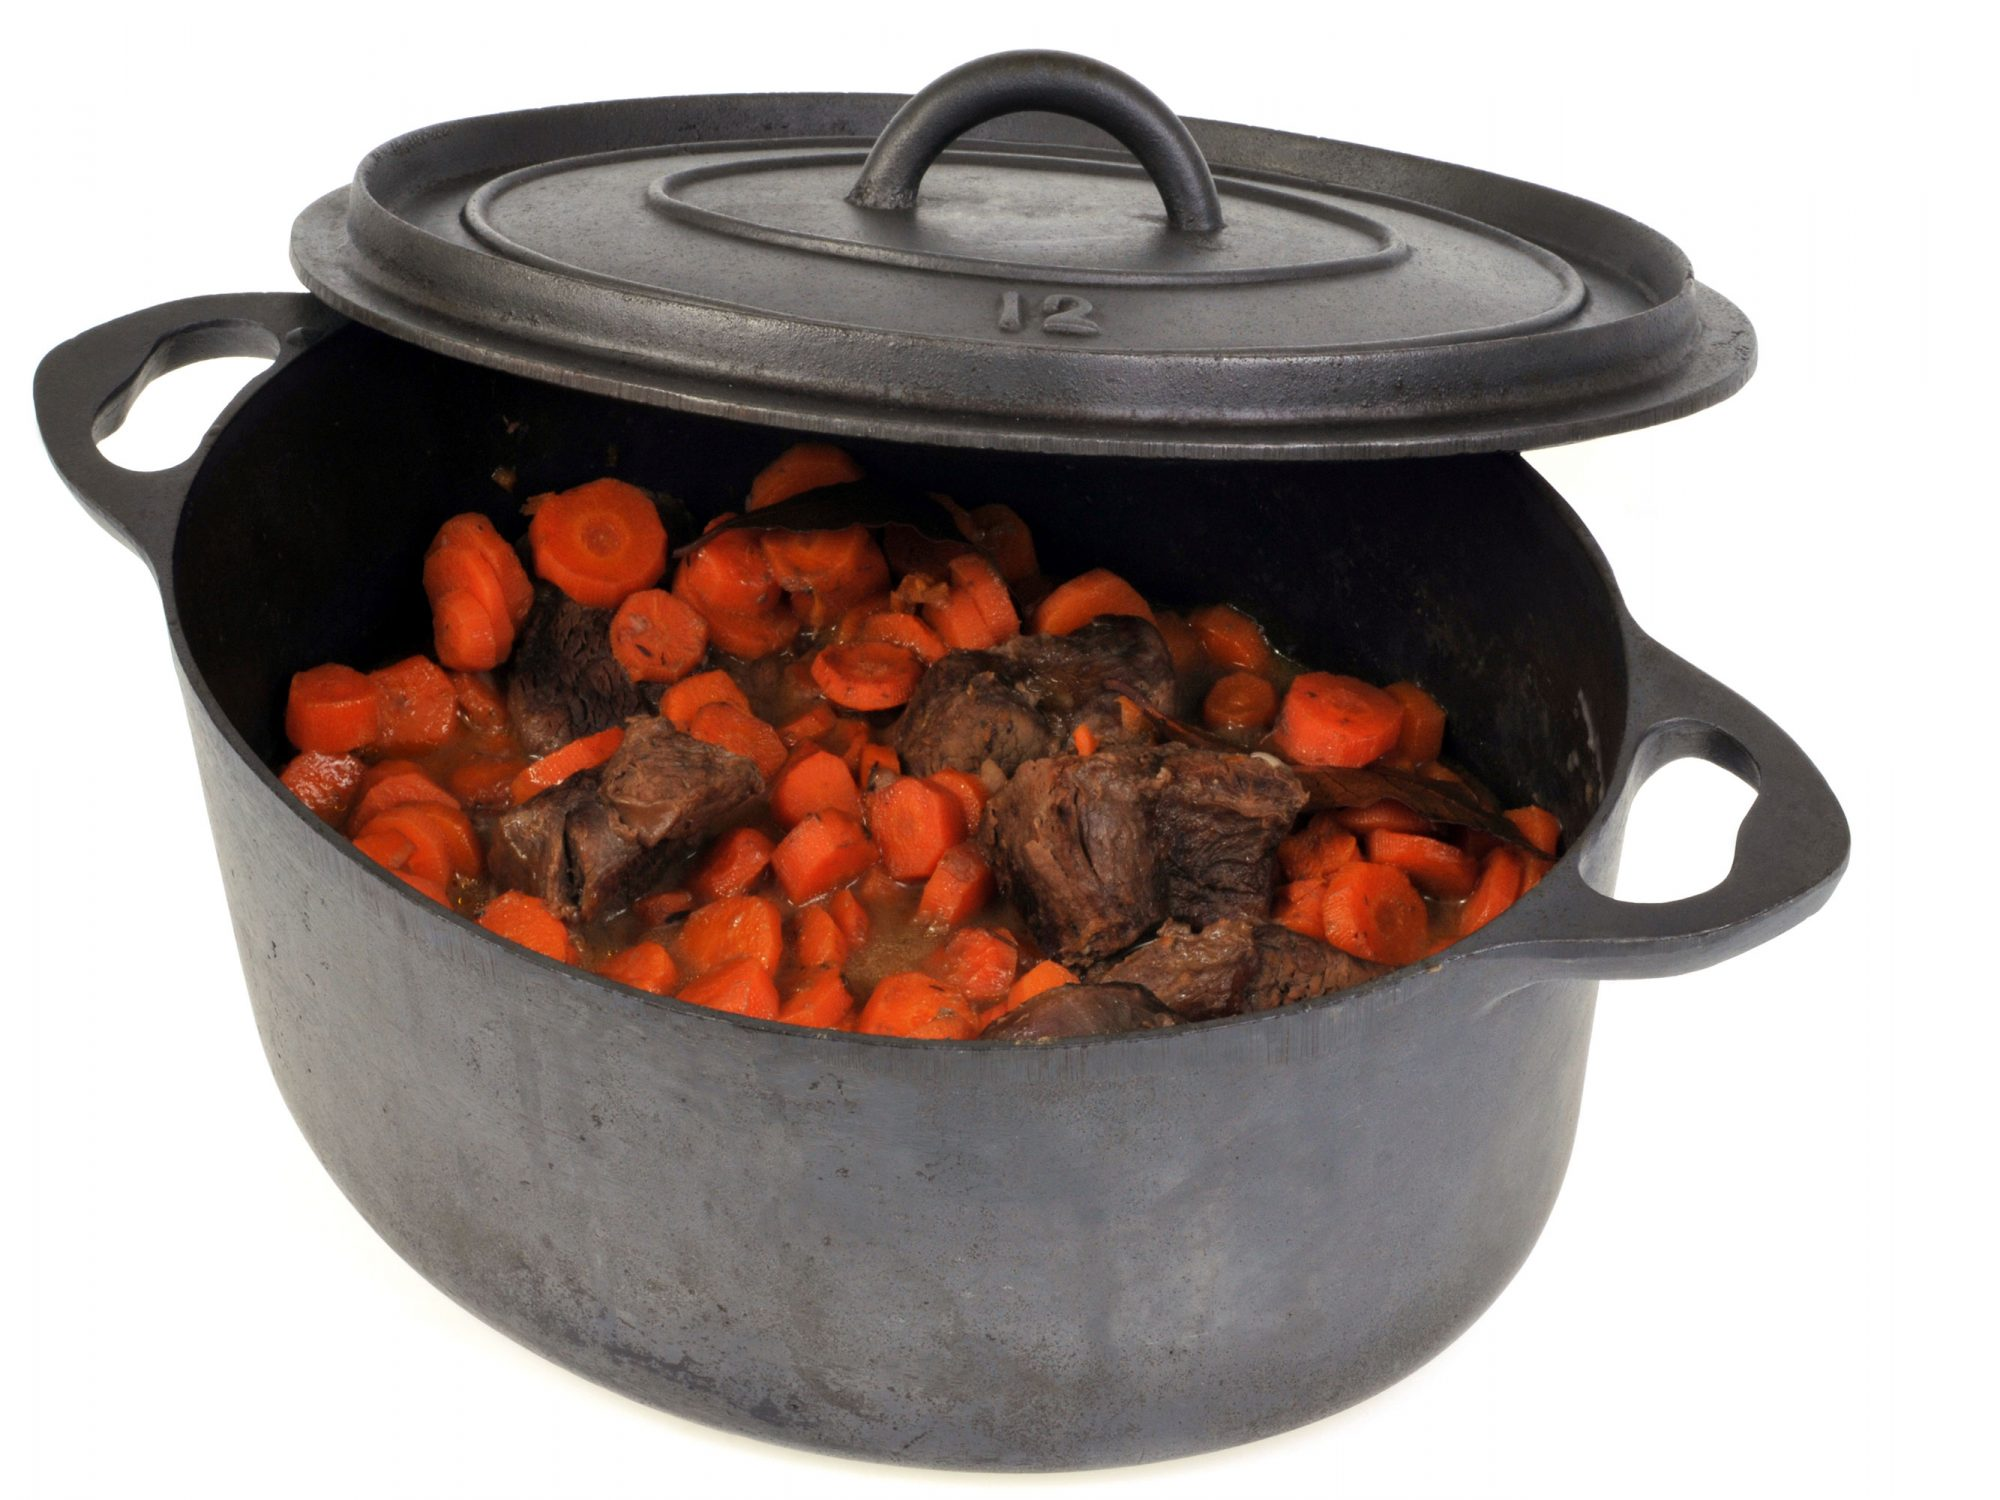 Cast Iron Dutch Oven with carrots and beef